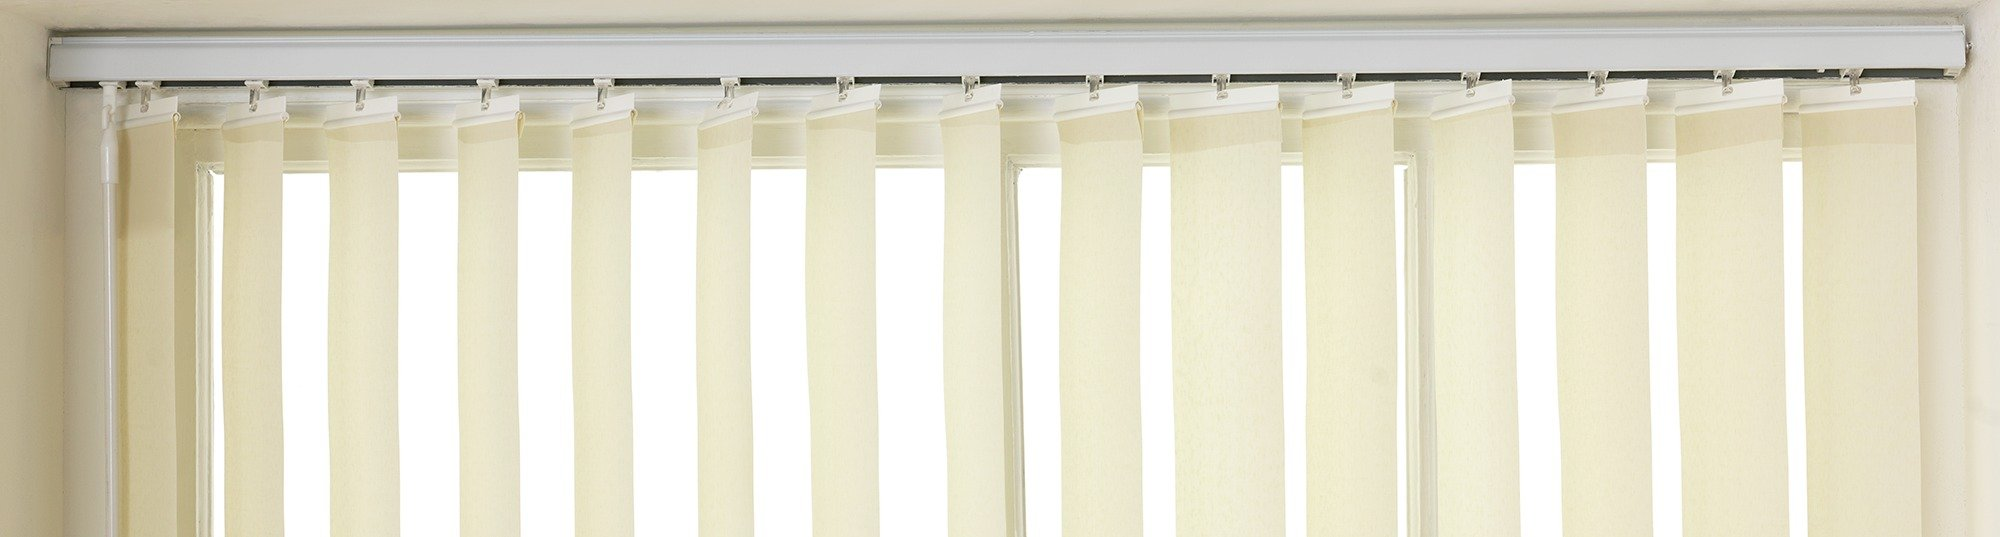 Argos Home Vertical Blind Headrail - 5ft